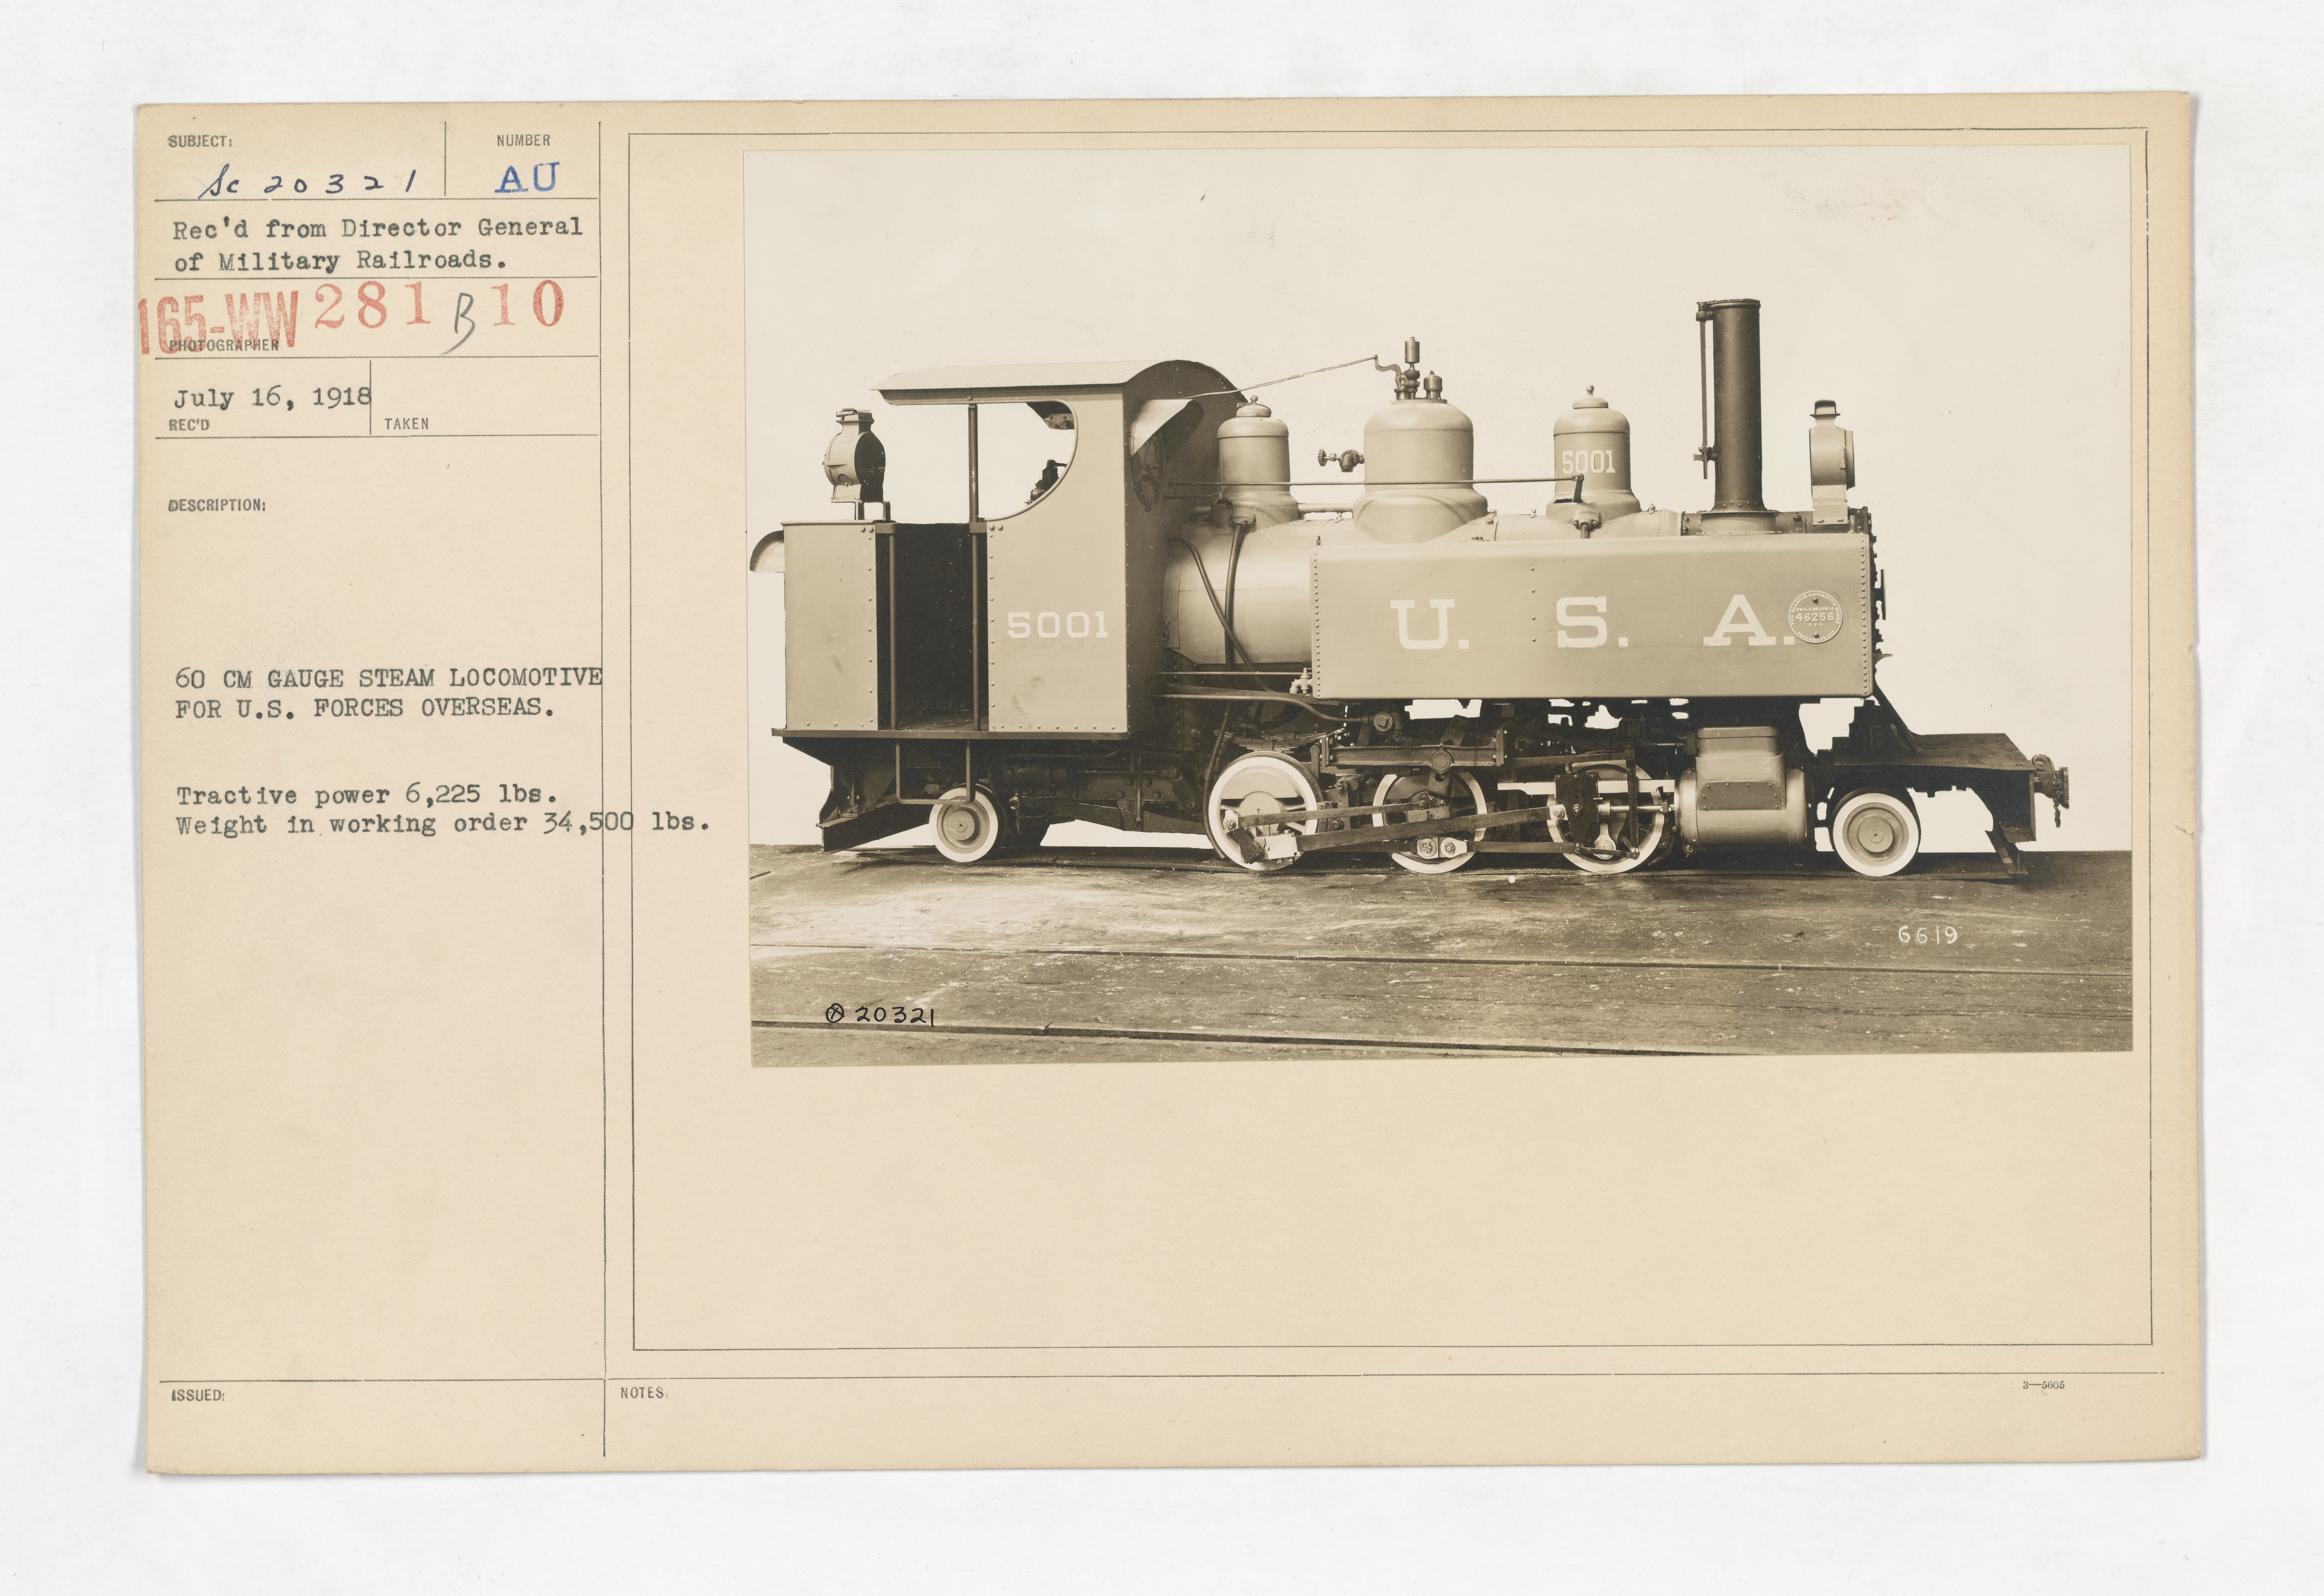 Military Administration - Transportation - Rail - 60 CM GAUGE STEAM LOCOMOTIVE FOR U.S. FORCES OVERSEAS. Tractive power 6,225 lbs. Weight in working order 34,500 lbs